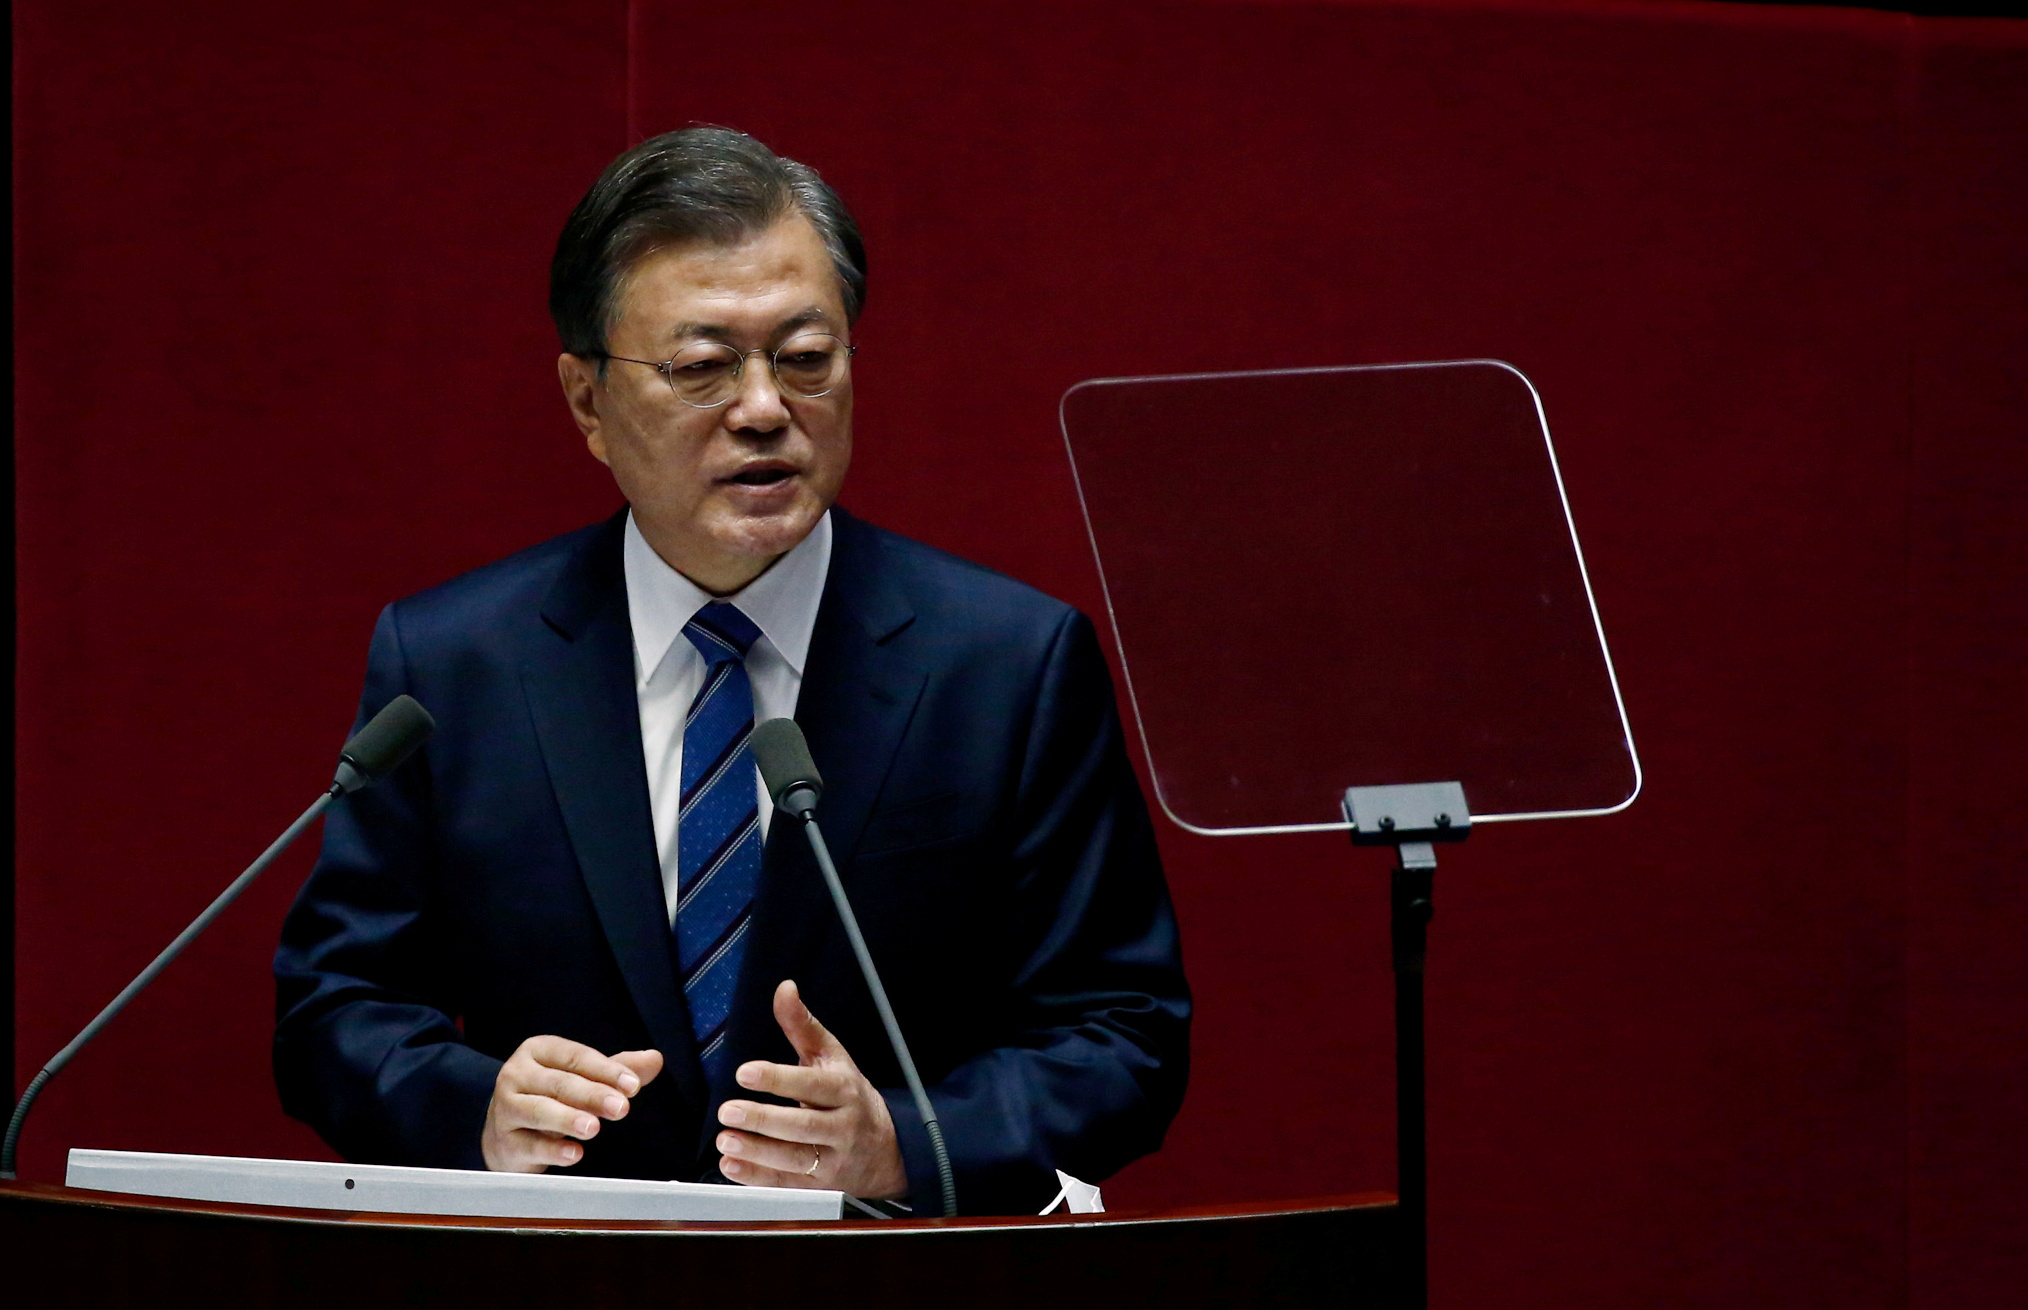 South Korean President Moon Jae-in speaks at the National Assembly in Seoul, South Korea, October 28, 2020. Jeon Heon-Kyun/Pool via REUTERS/File Photo